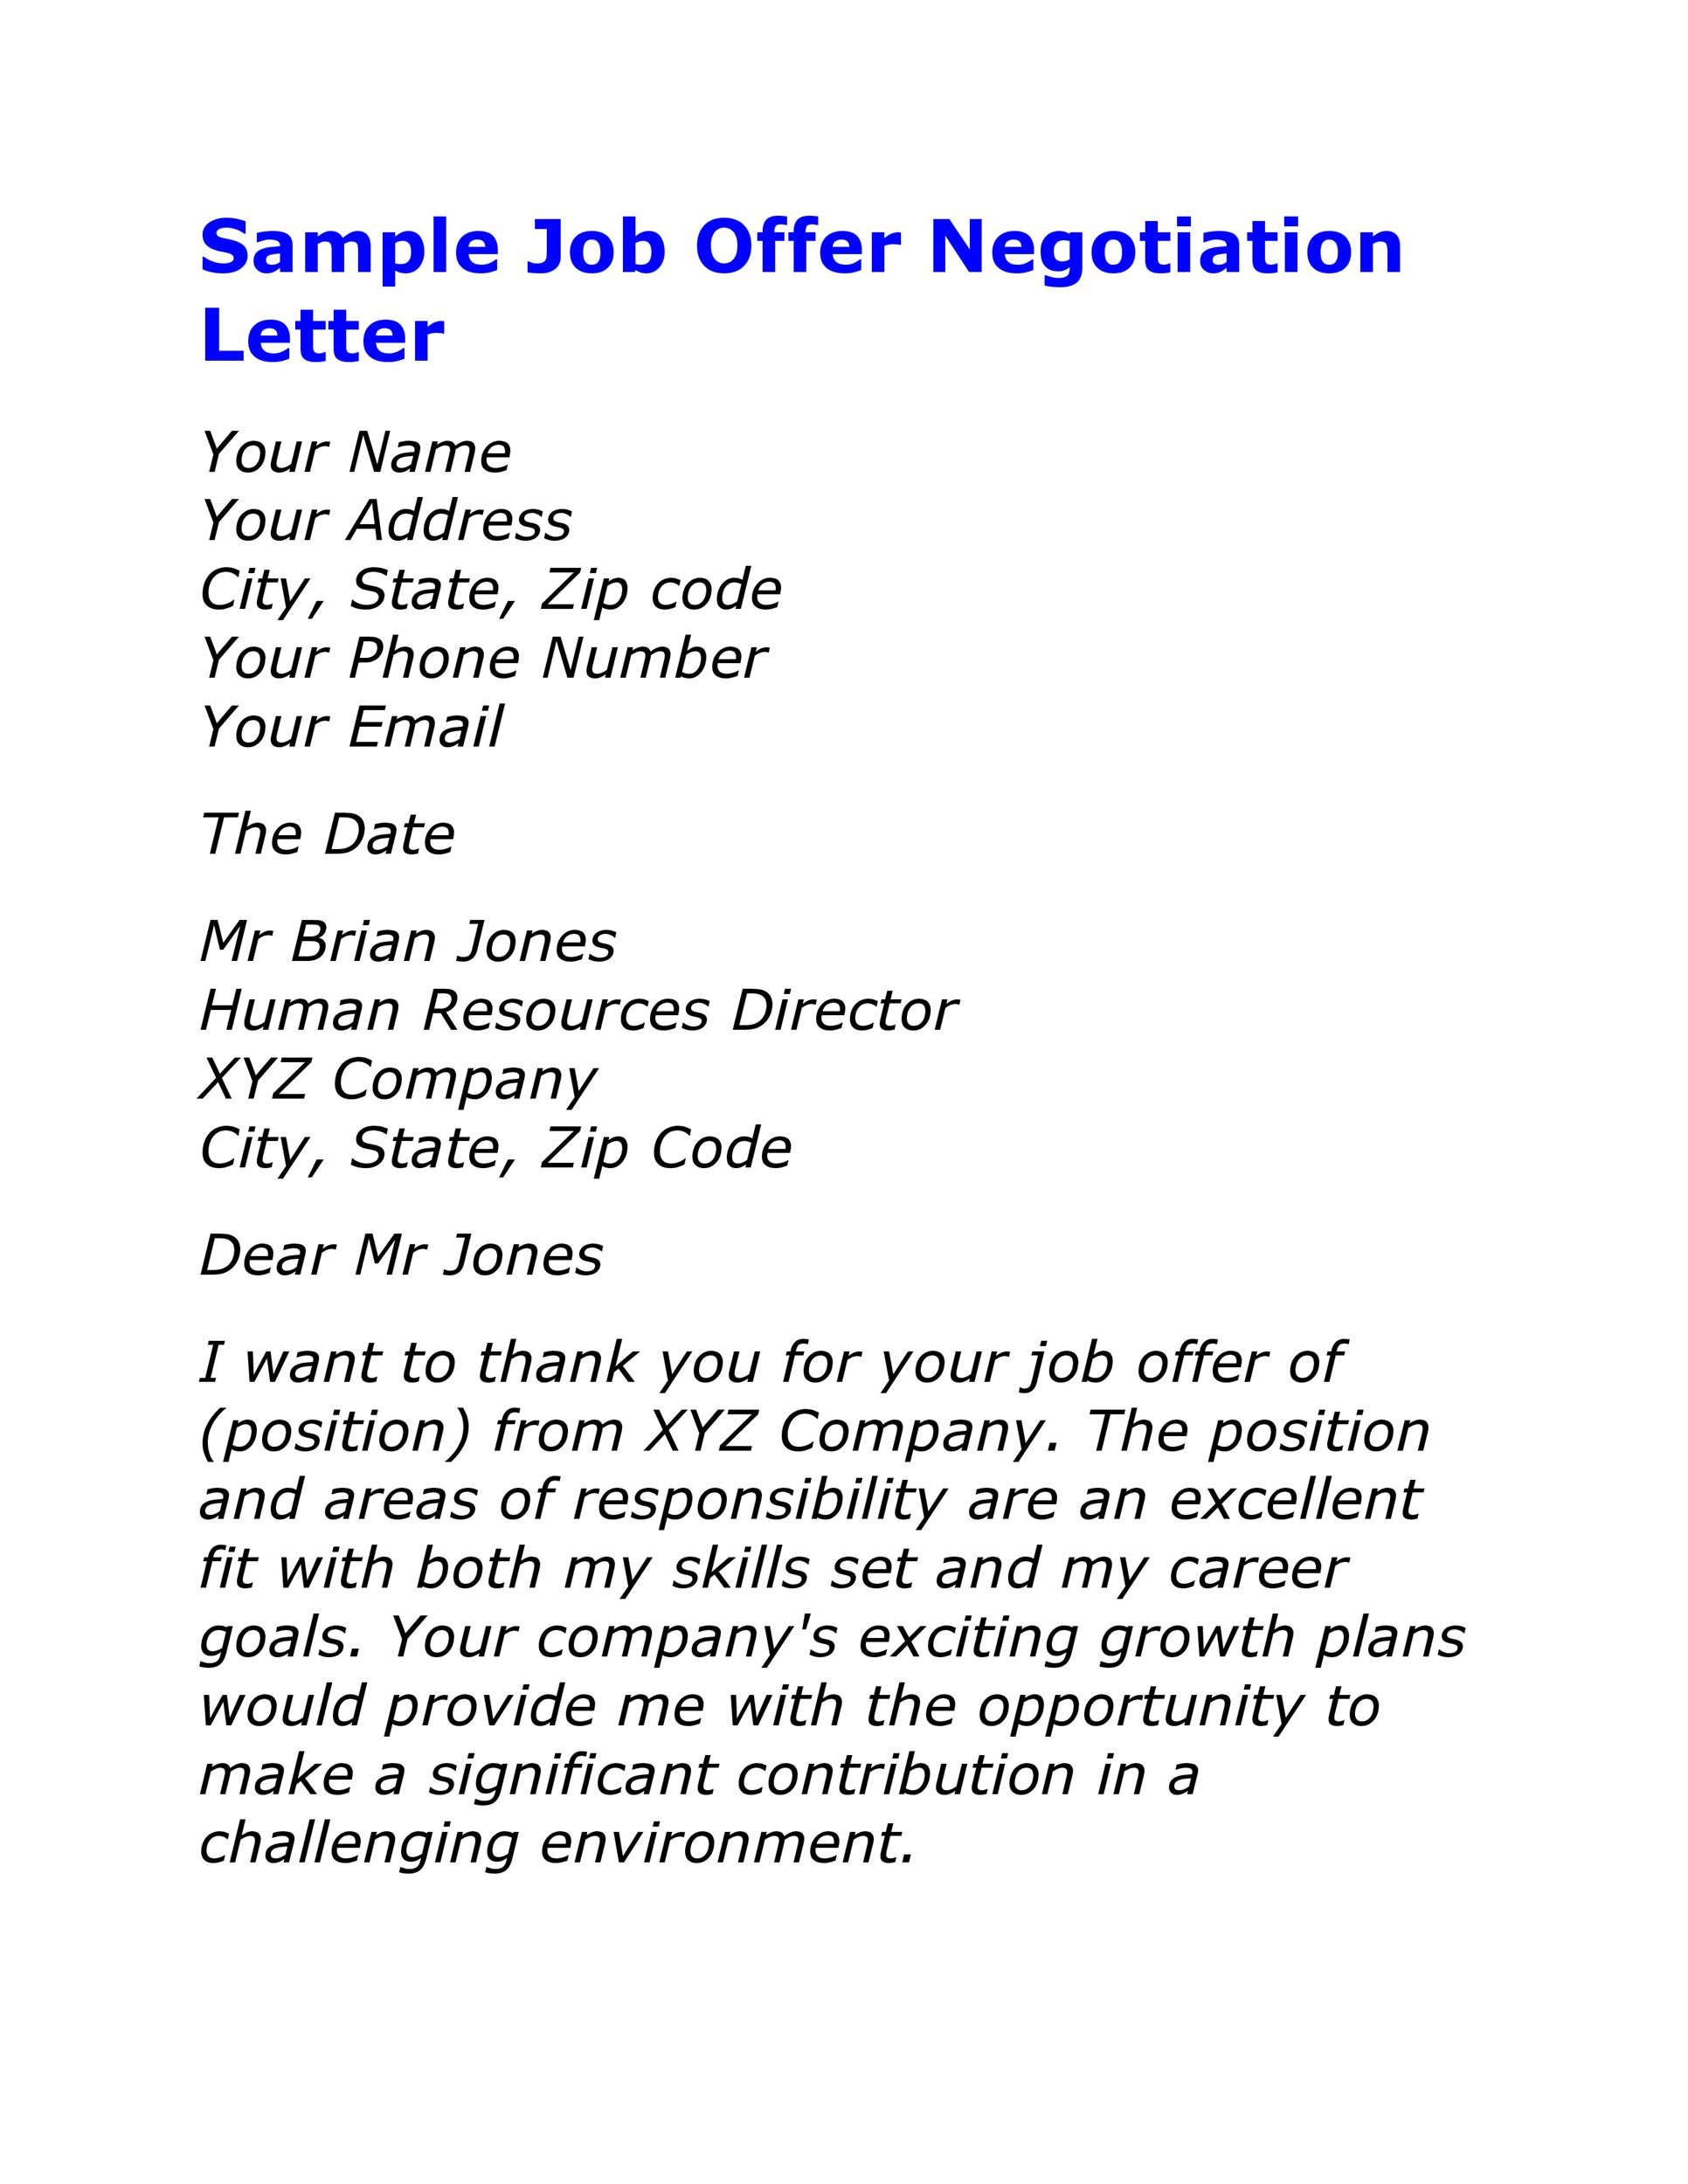 Free salary negotiation letter 18